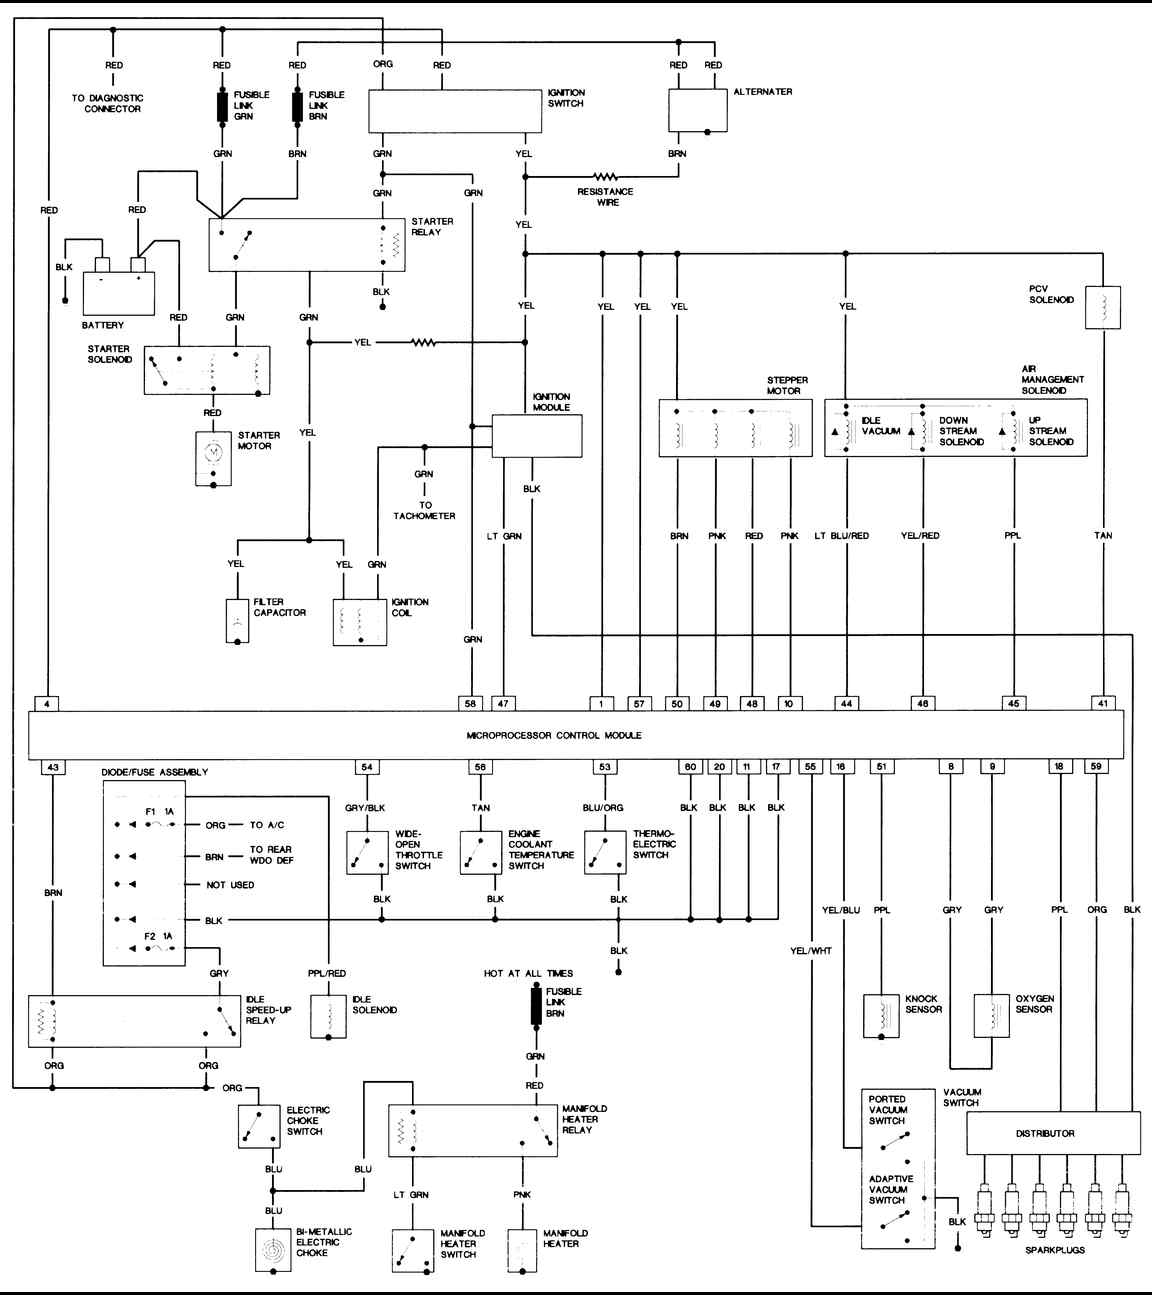 2002 jeep wrangler fuel injector wiring diagram wiring diagram1988 jeep wrangler electrical diagram carbonvote mudit blog \\u2022